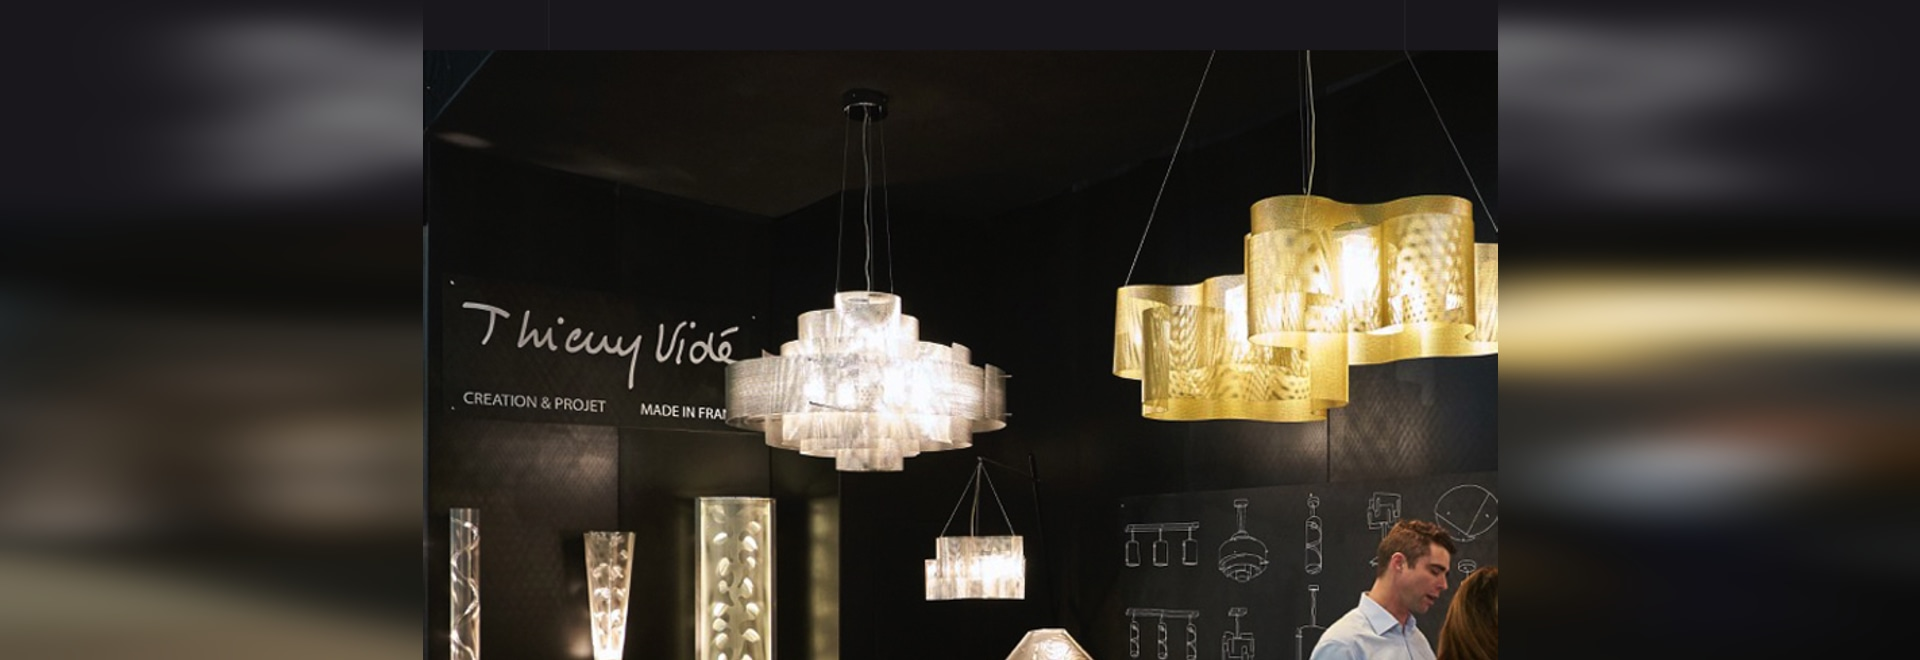 Thierry Vidé Design will be at Maison & Objet fair 08-12 September 2017